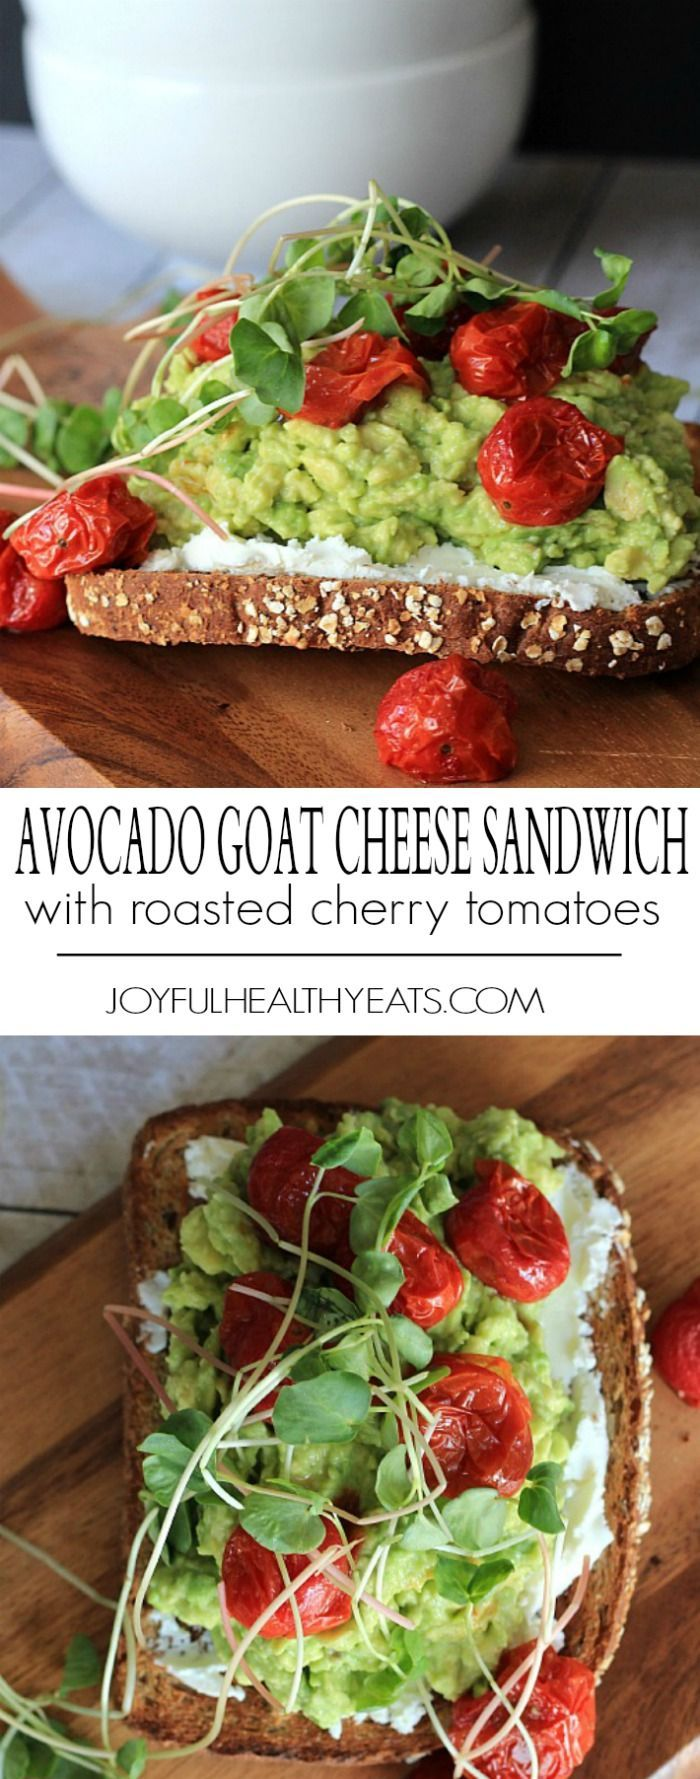 Mashed Avocado Goat Cheese Sandwich topped with roasted cherry tomatoes and sprouts! Healthy, filled with good fats, perfect for a quick lunch recipe! | joyfulhealthyeats...